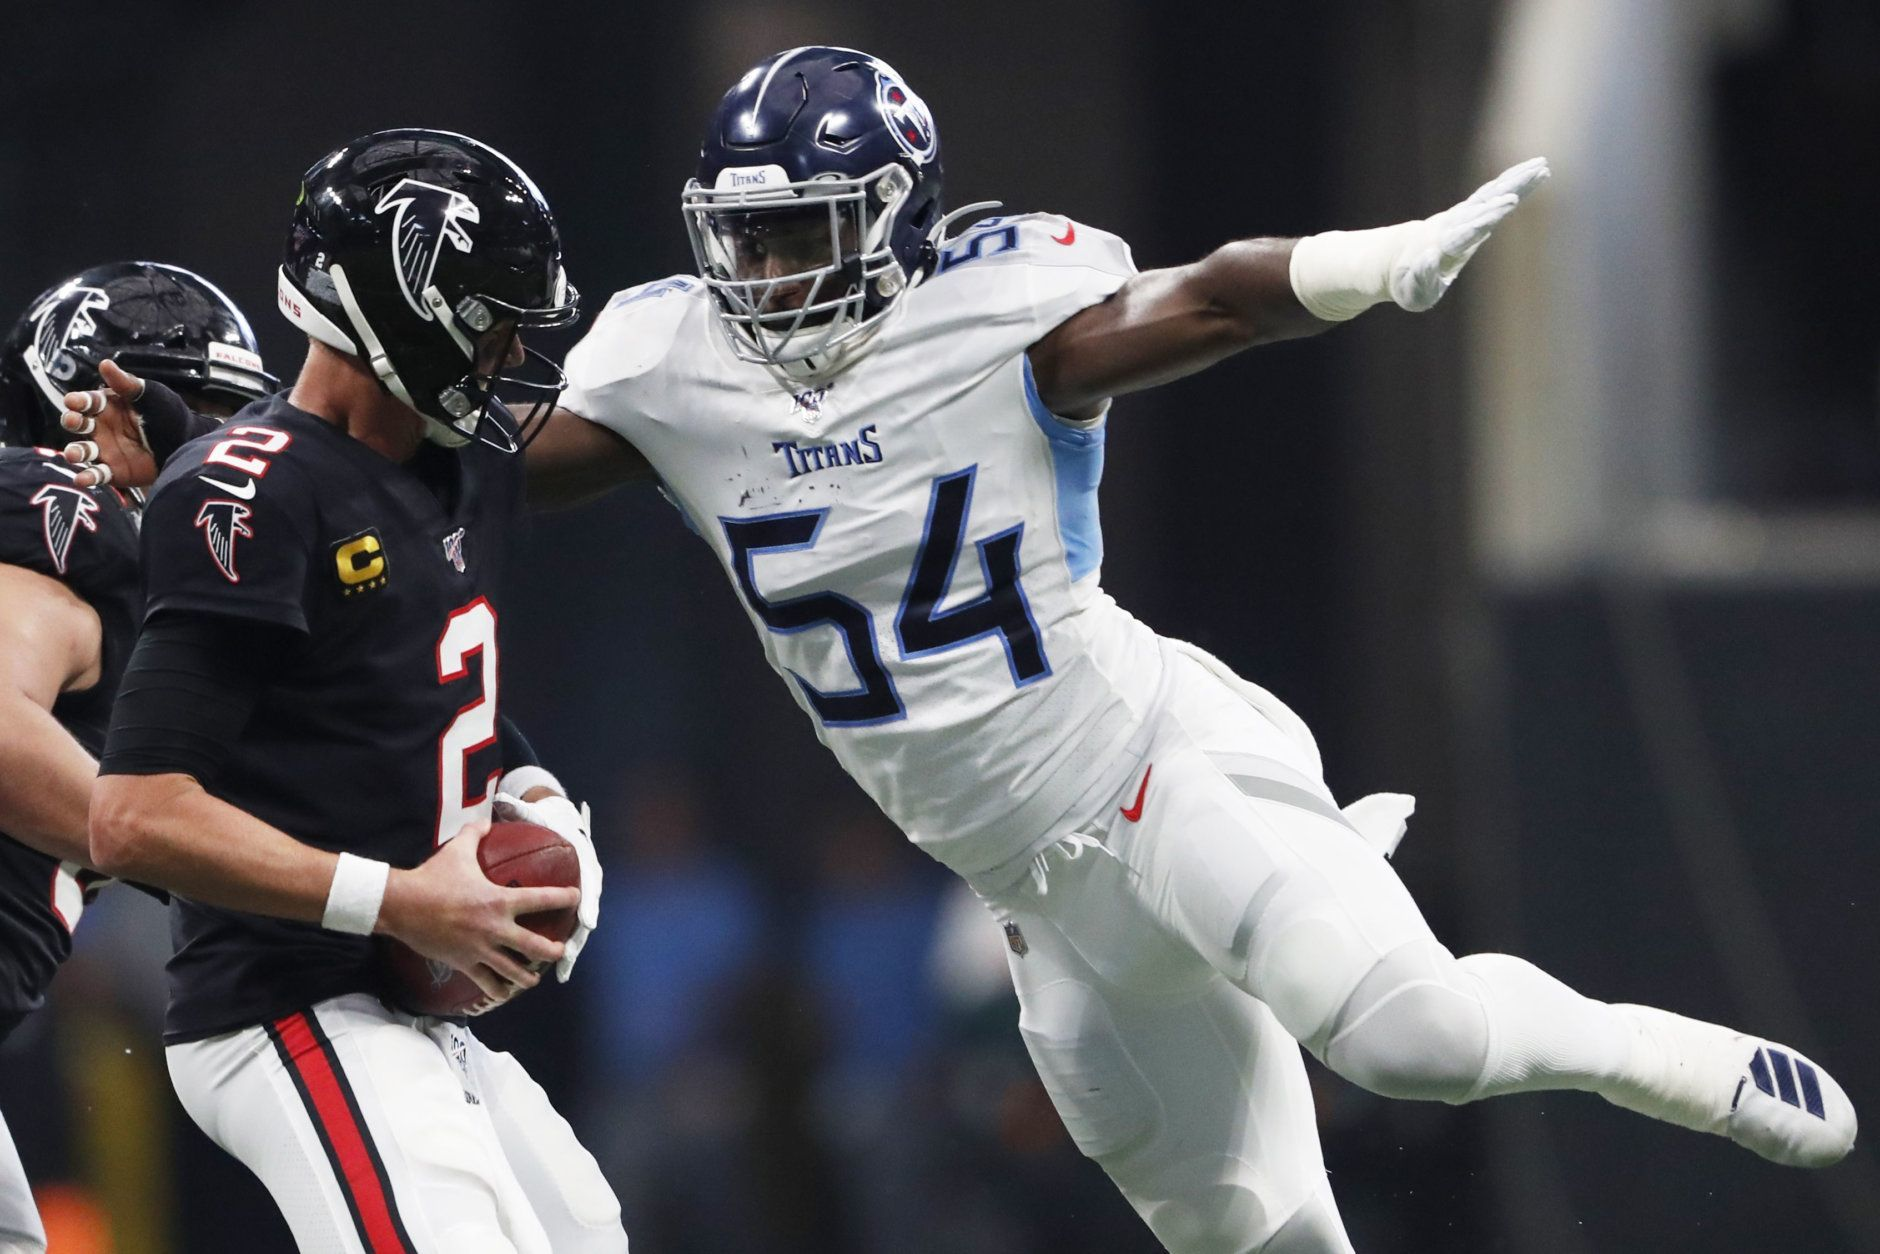 """<p><b><i>Titans 24</i></b><br /> <b><i>Falcons 10</i></b></p> <p>Man, Atlanta&#8217;s ruining my <a href=""""https://wtop.com/gallery/nfl/2019-nfl-playoff-predictions/"""">NFL Preview</a> …</p>"""